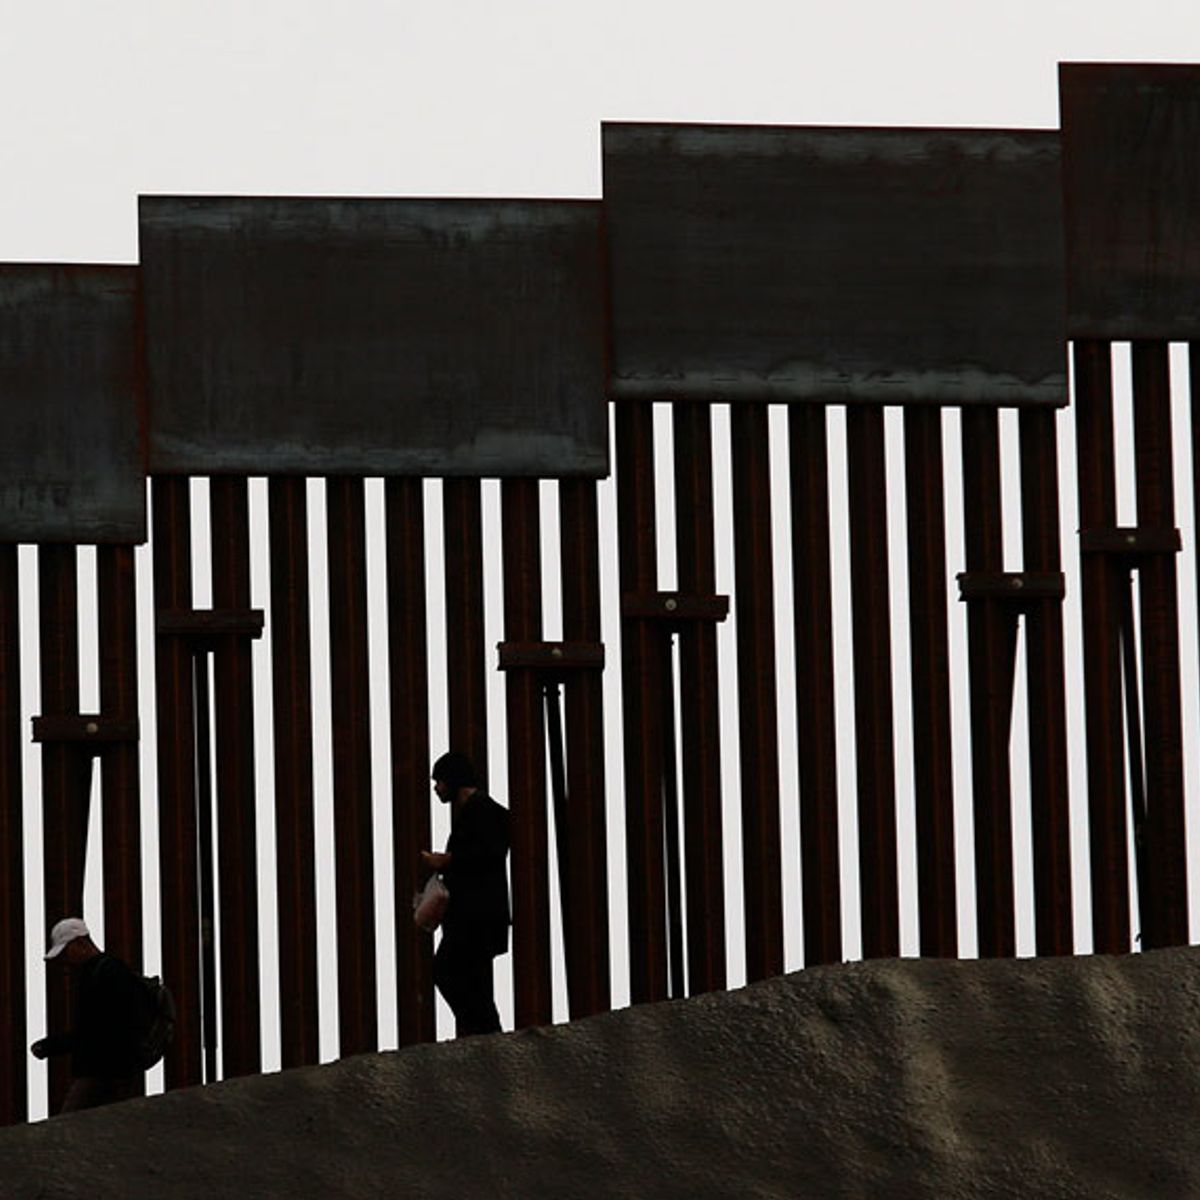 The Supreme Court and refugees at the southern border: 5 questions answered